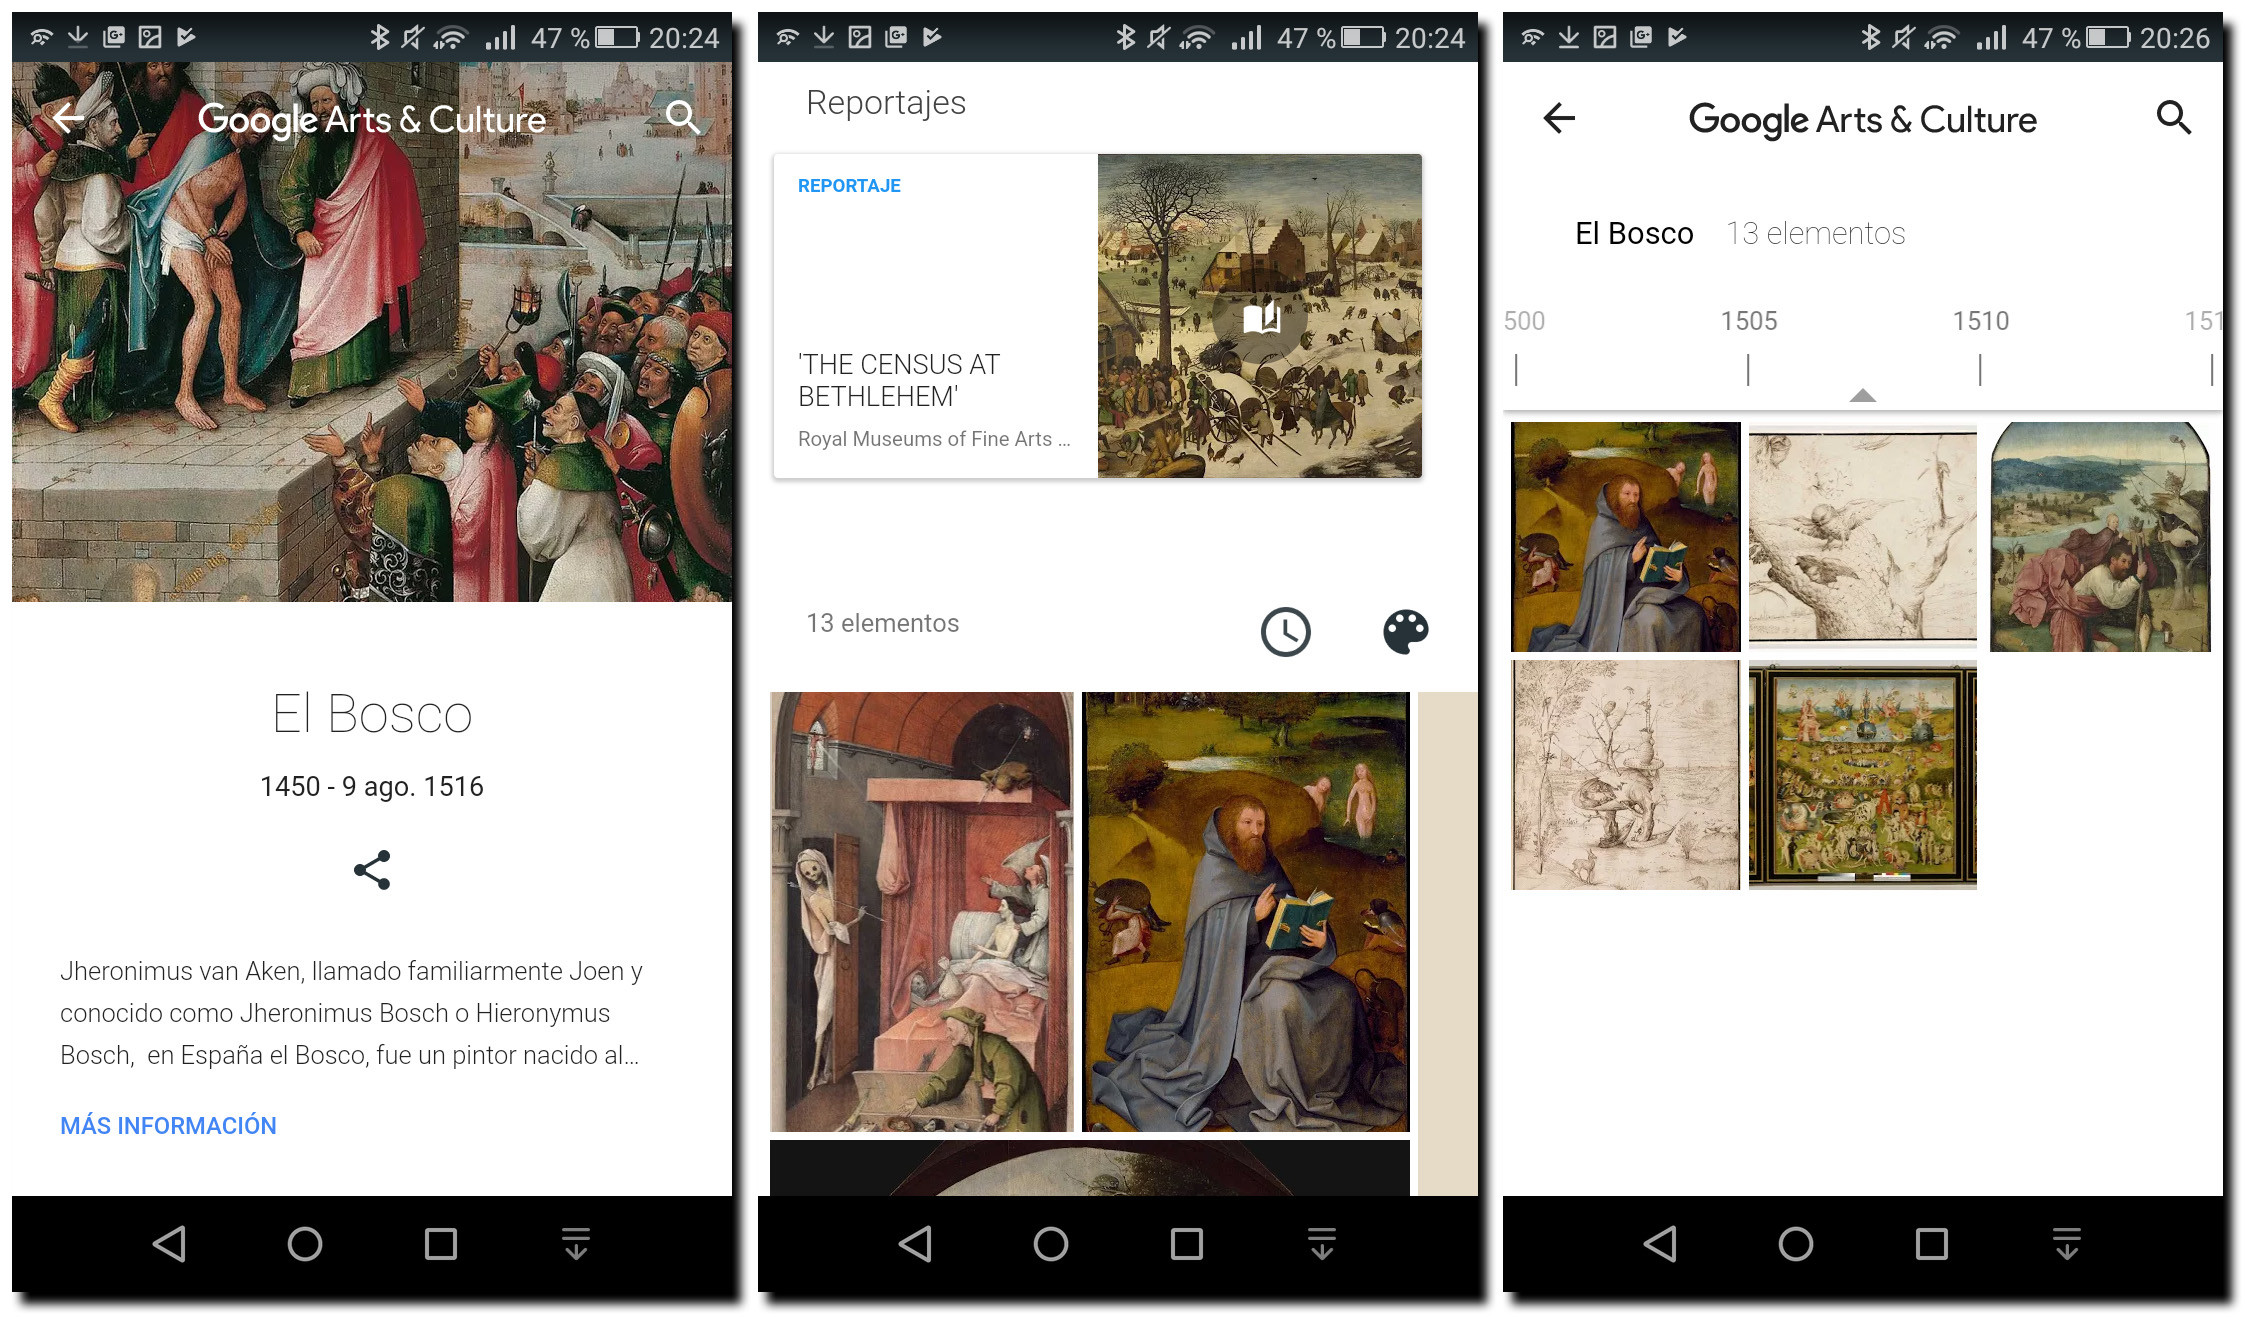 El Bosco Google Arts & Culture